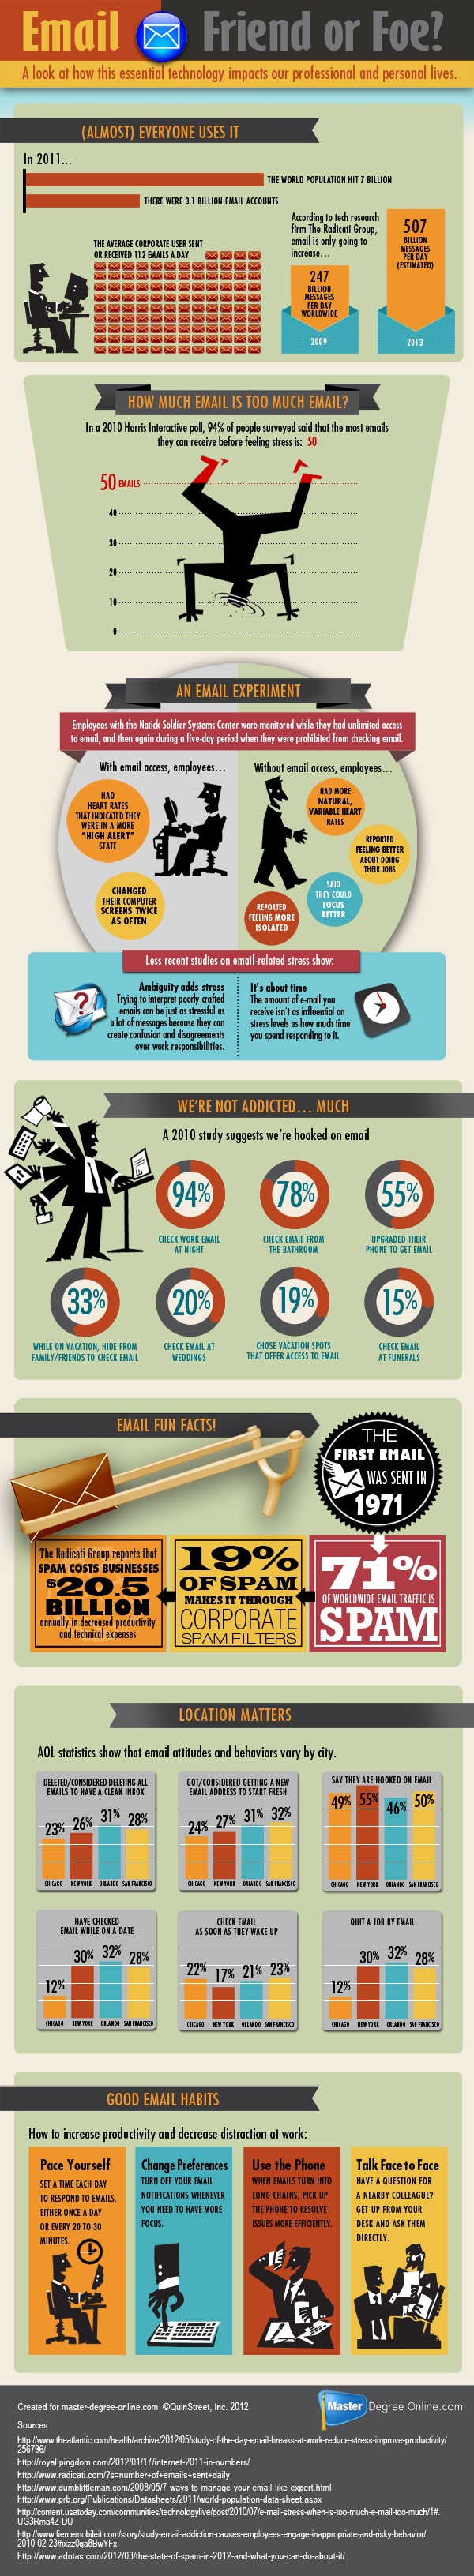 Infographic: Email: Friend or Foe?